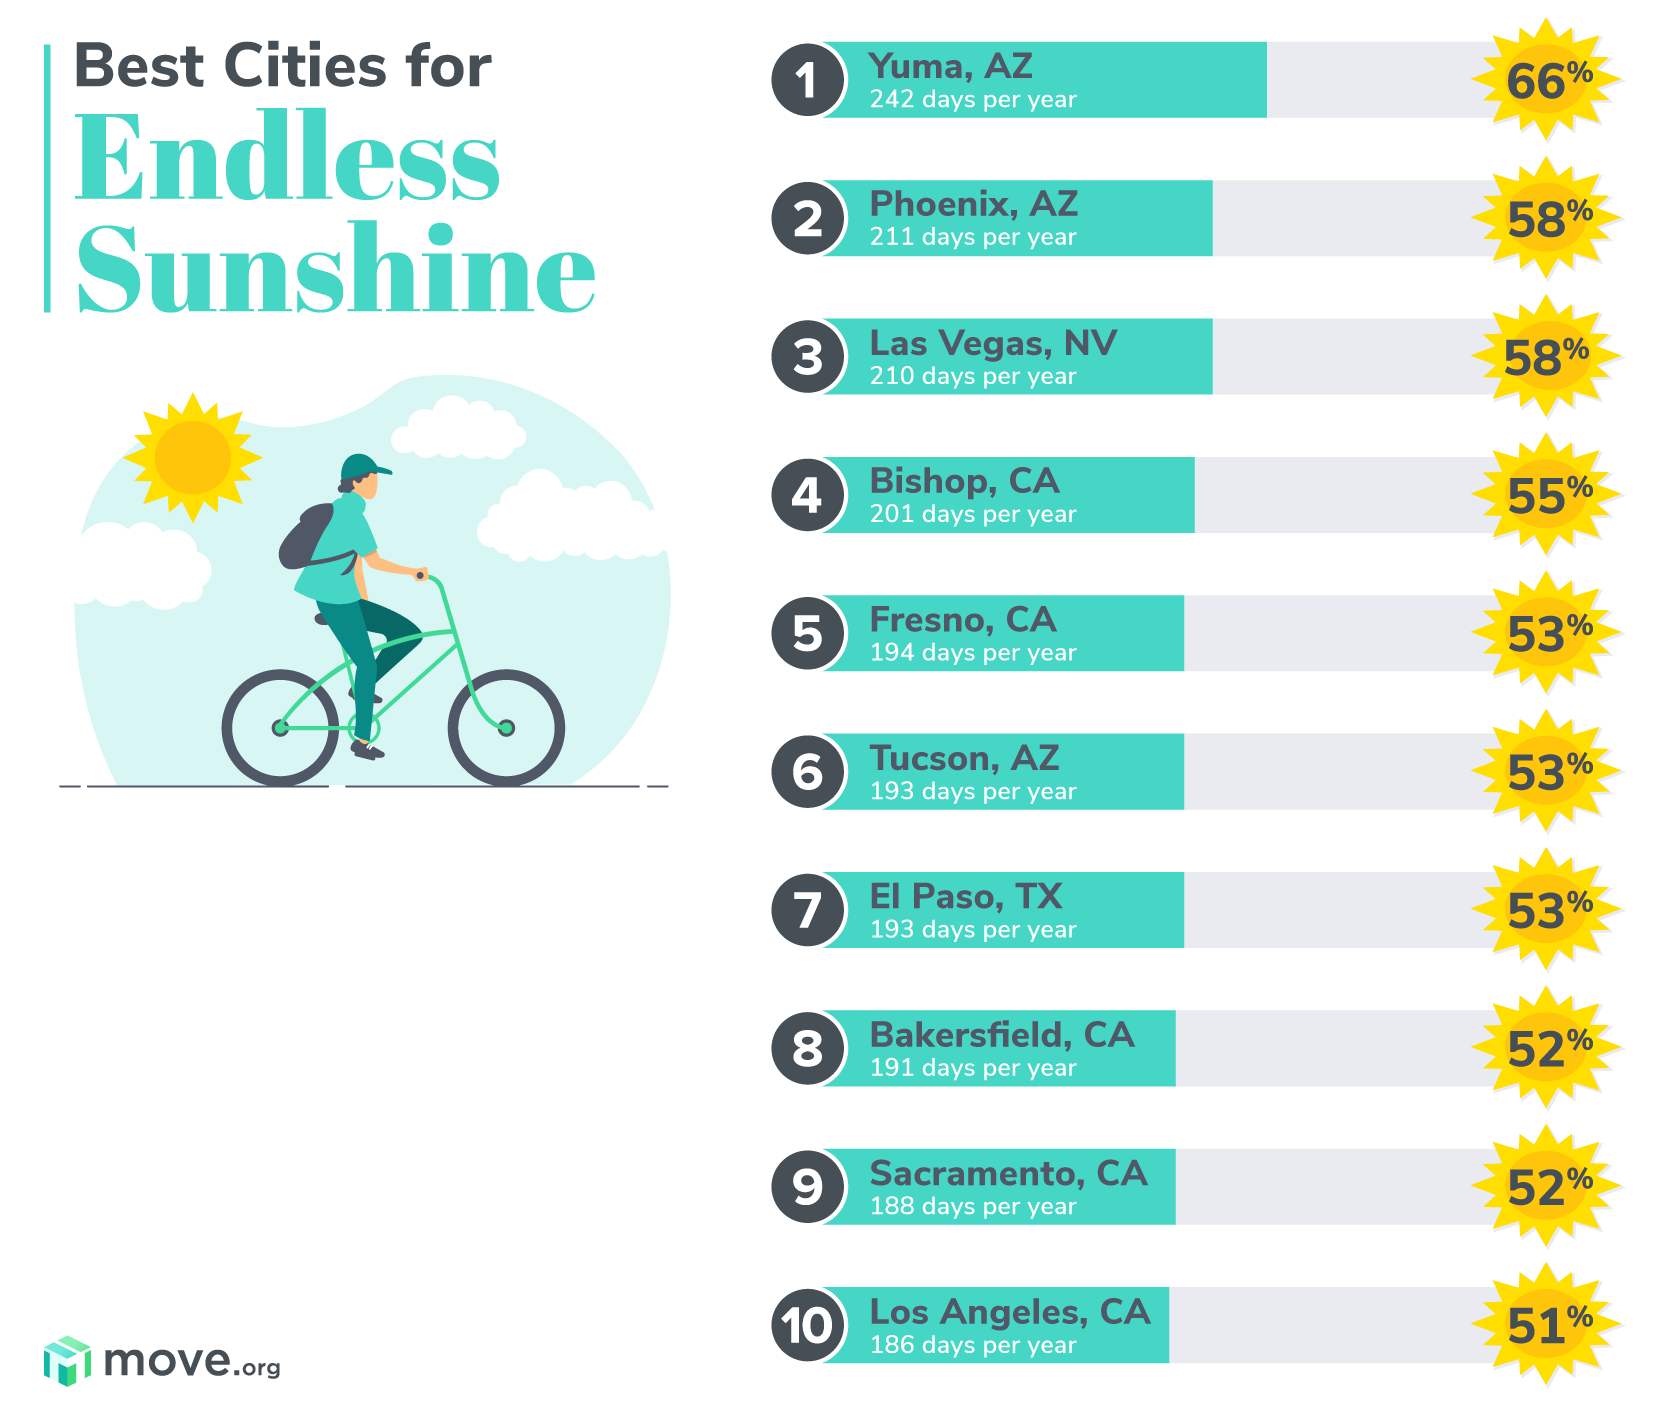 Best cities for endless sunshine